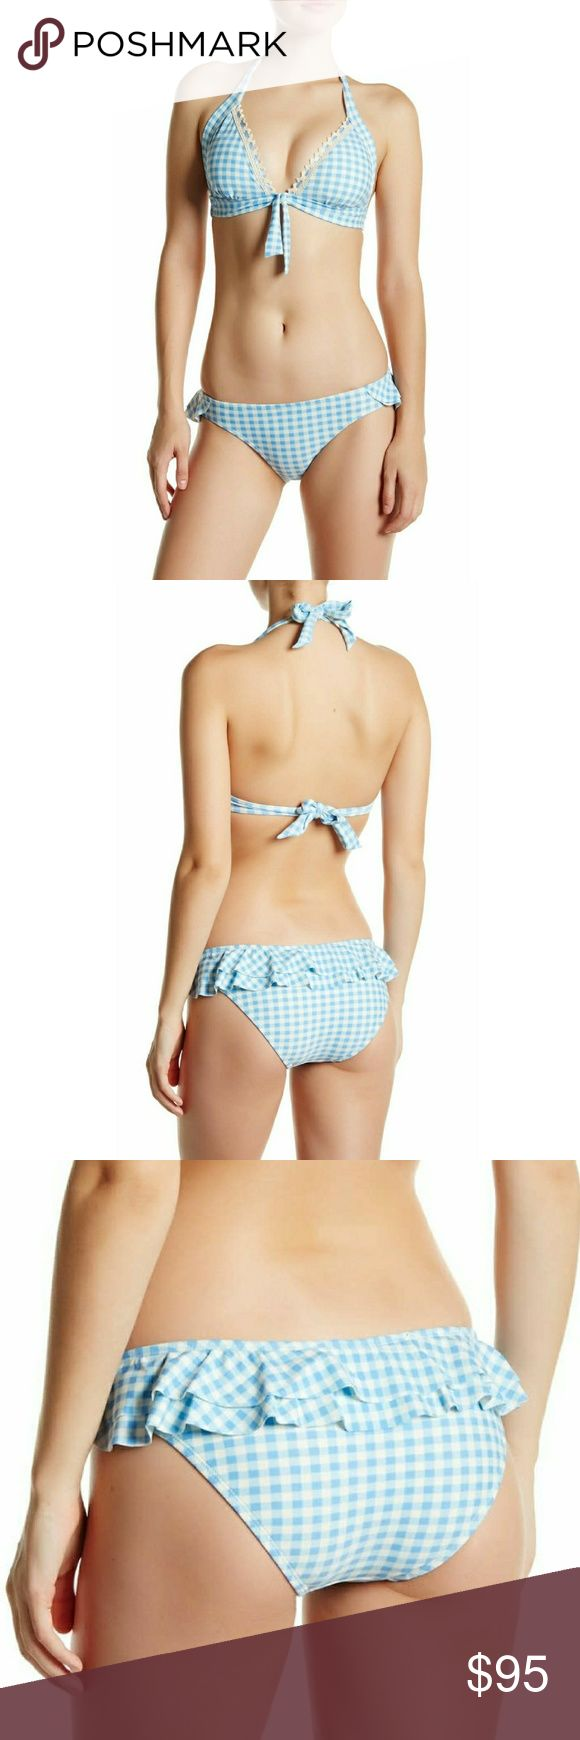 Gingham Hipster Moderate Bikini Bottoms Gingham Hipster Moderate Bikini Bottoms  Color: Mystic Blue  Pin-up style flirty gingham print ruffle bikini bottoms. Match with any style of a white bikini top for a look that you love♡  Hipster cut with ruffle detail  Gingham Print Moderate Coverage  Fully lined Imported  *Fits True To Size   Fiber Content: 81% Nylon  19% Spandex   Care: Hand Wash Betsey Johnson Swim Bikinis